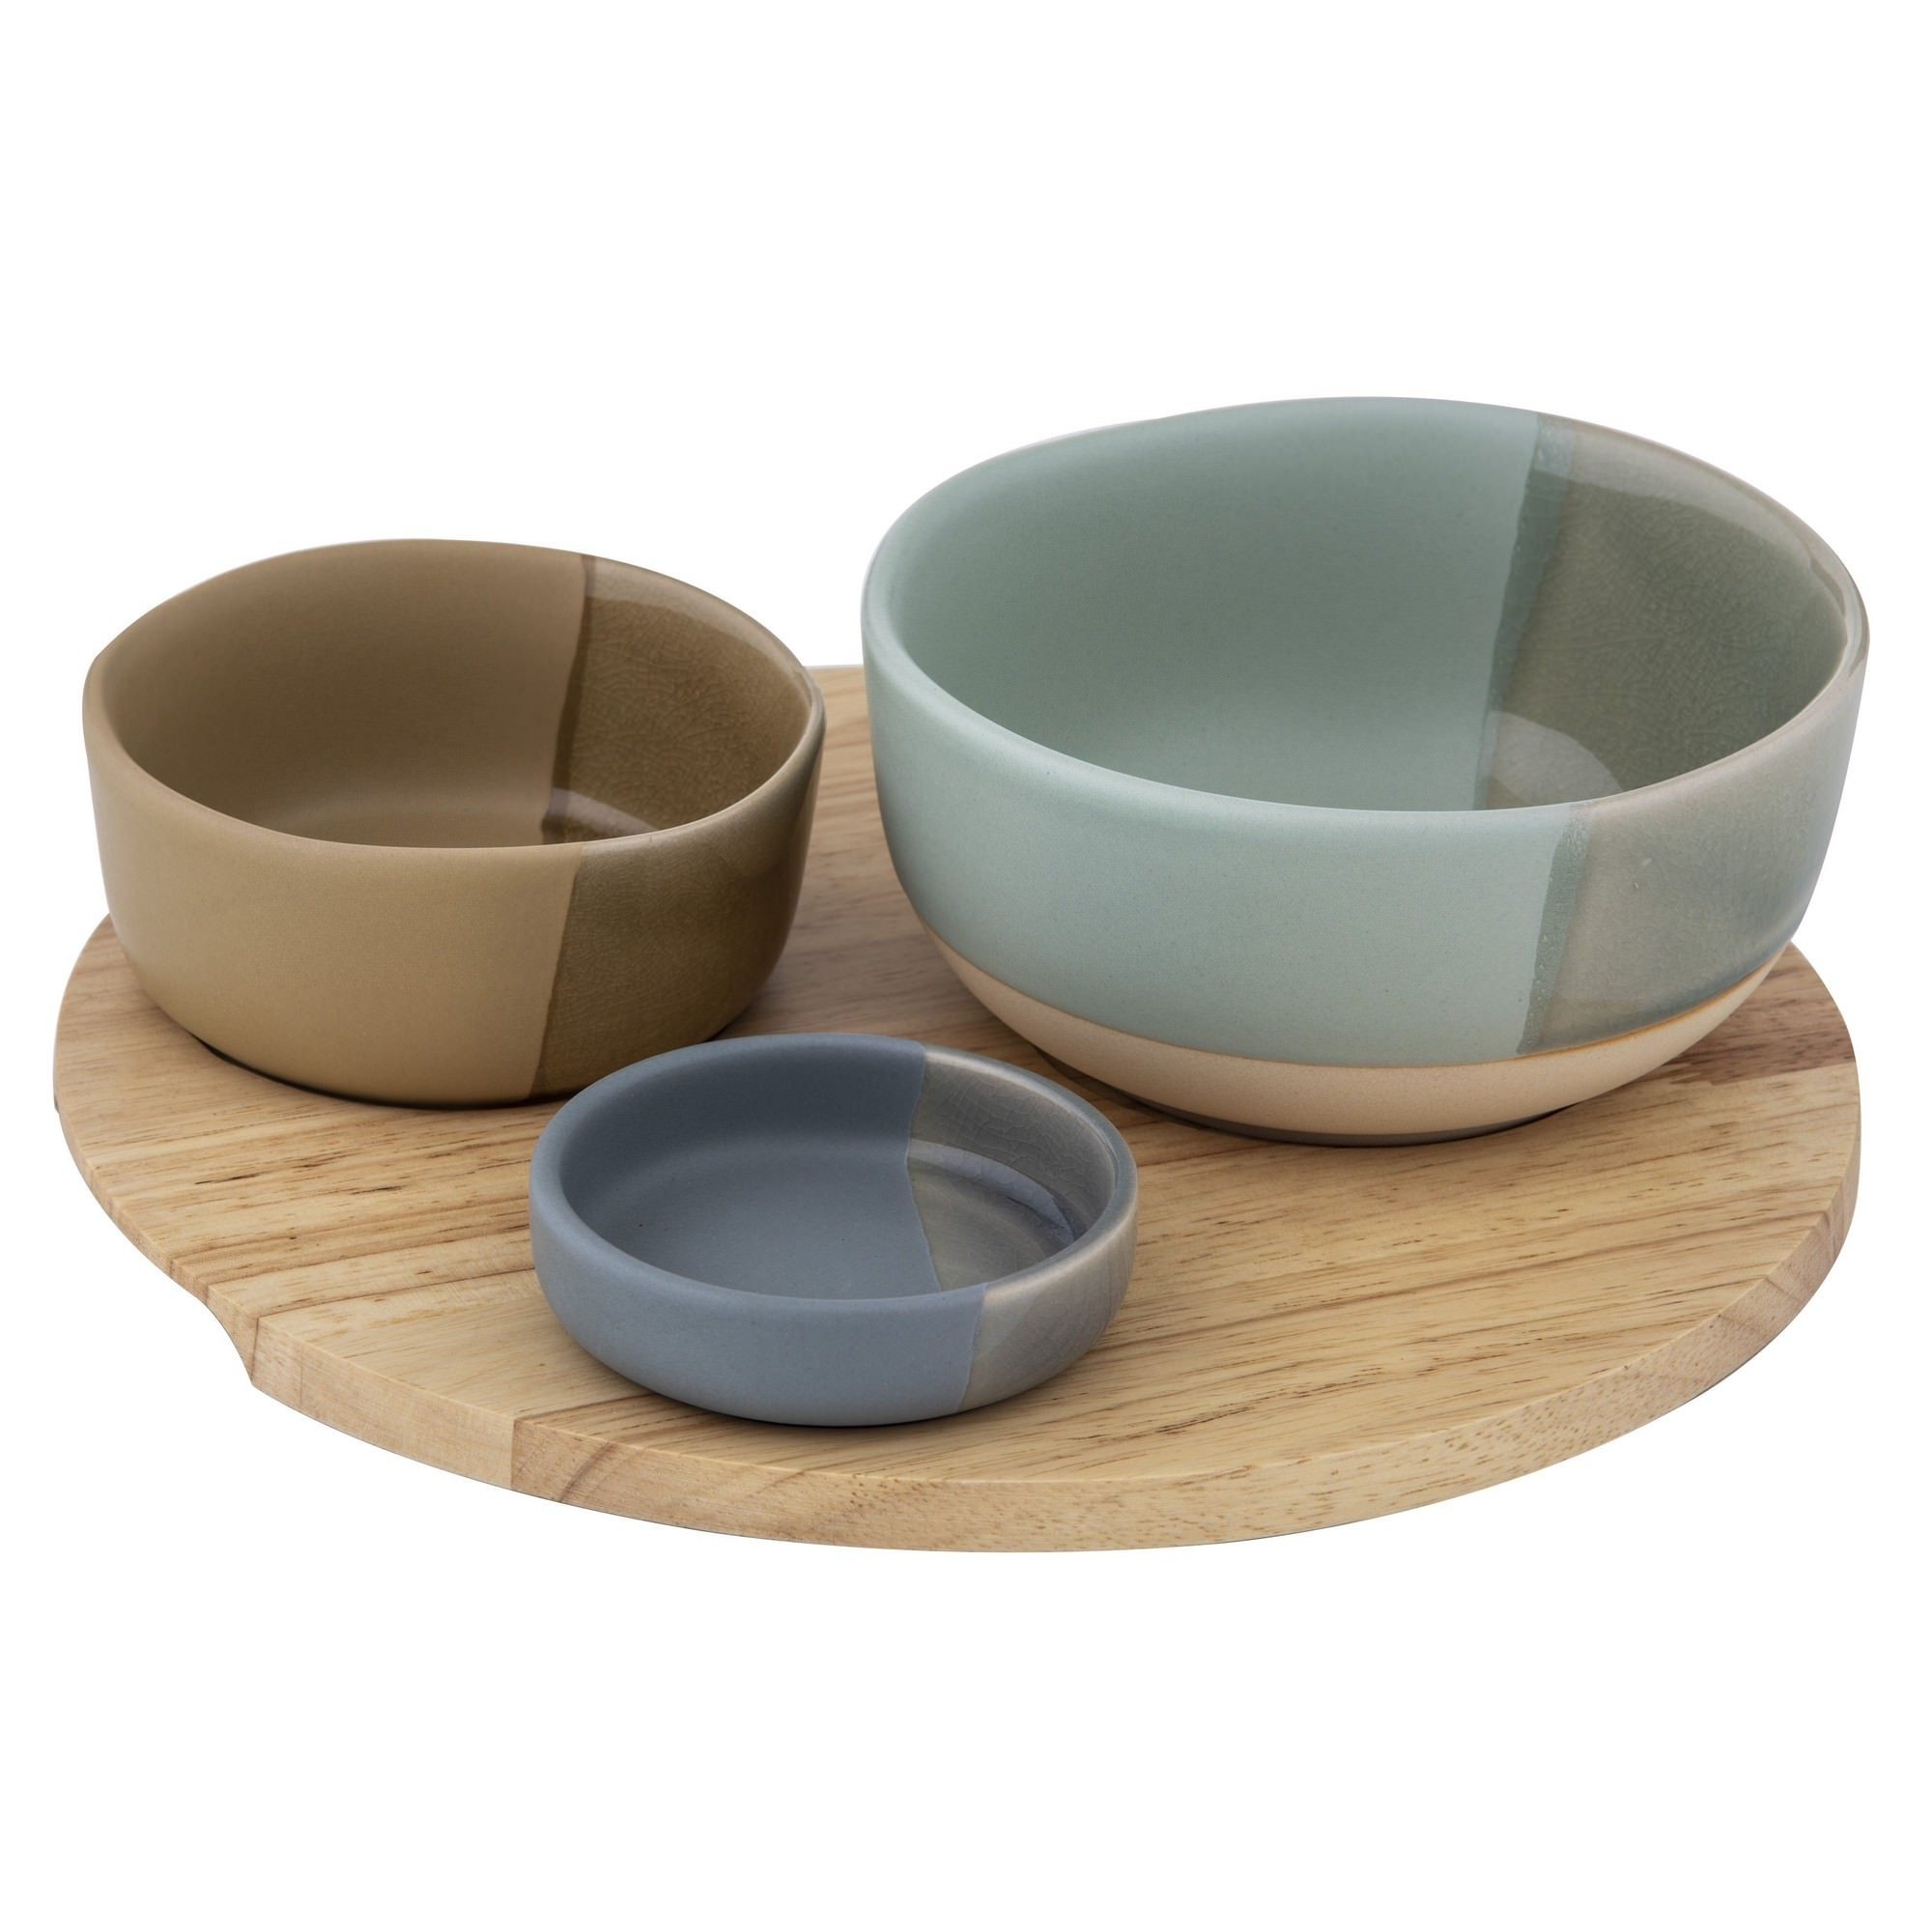 Chameleon 3 Piece Ceramic Bowl Set with Wooden Tray